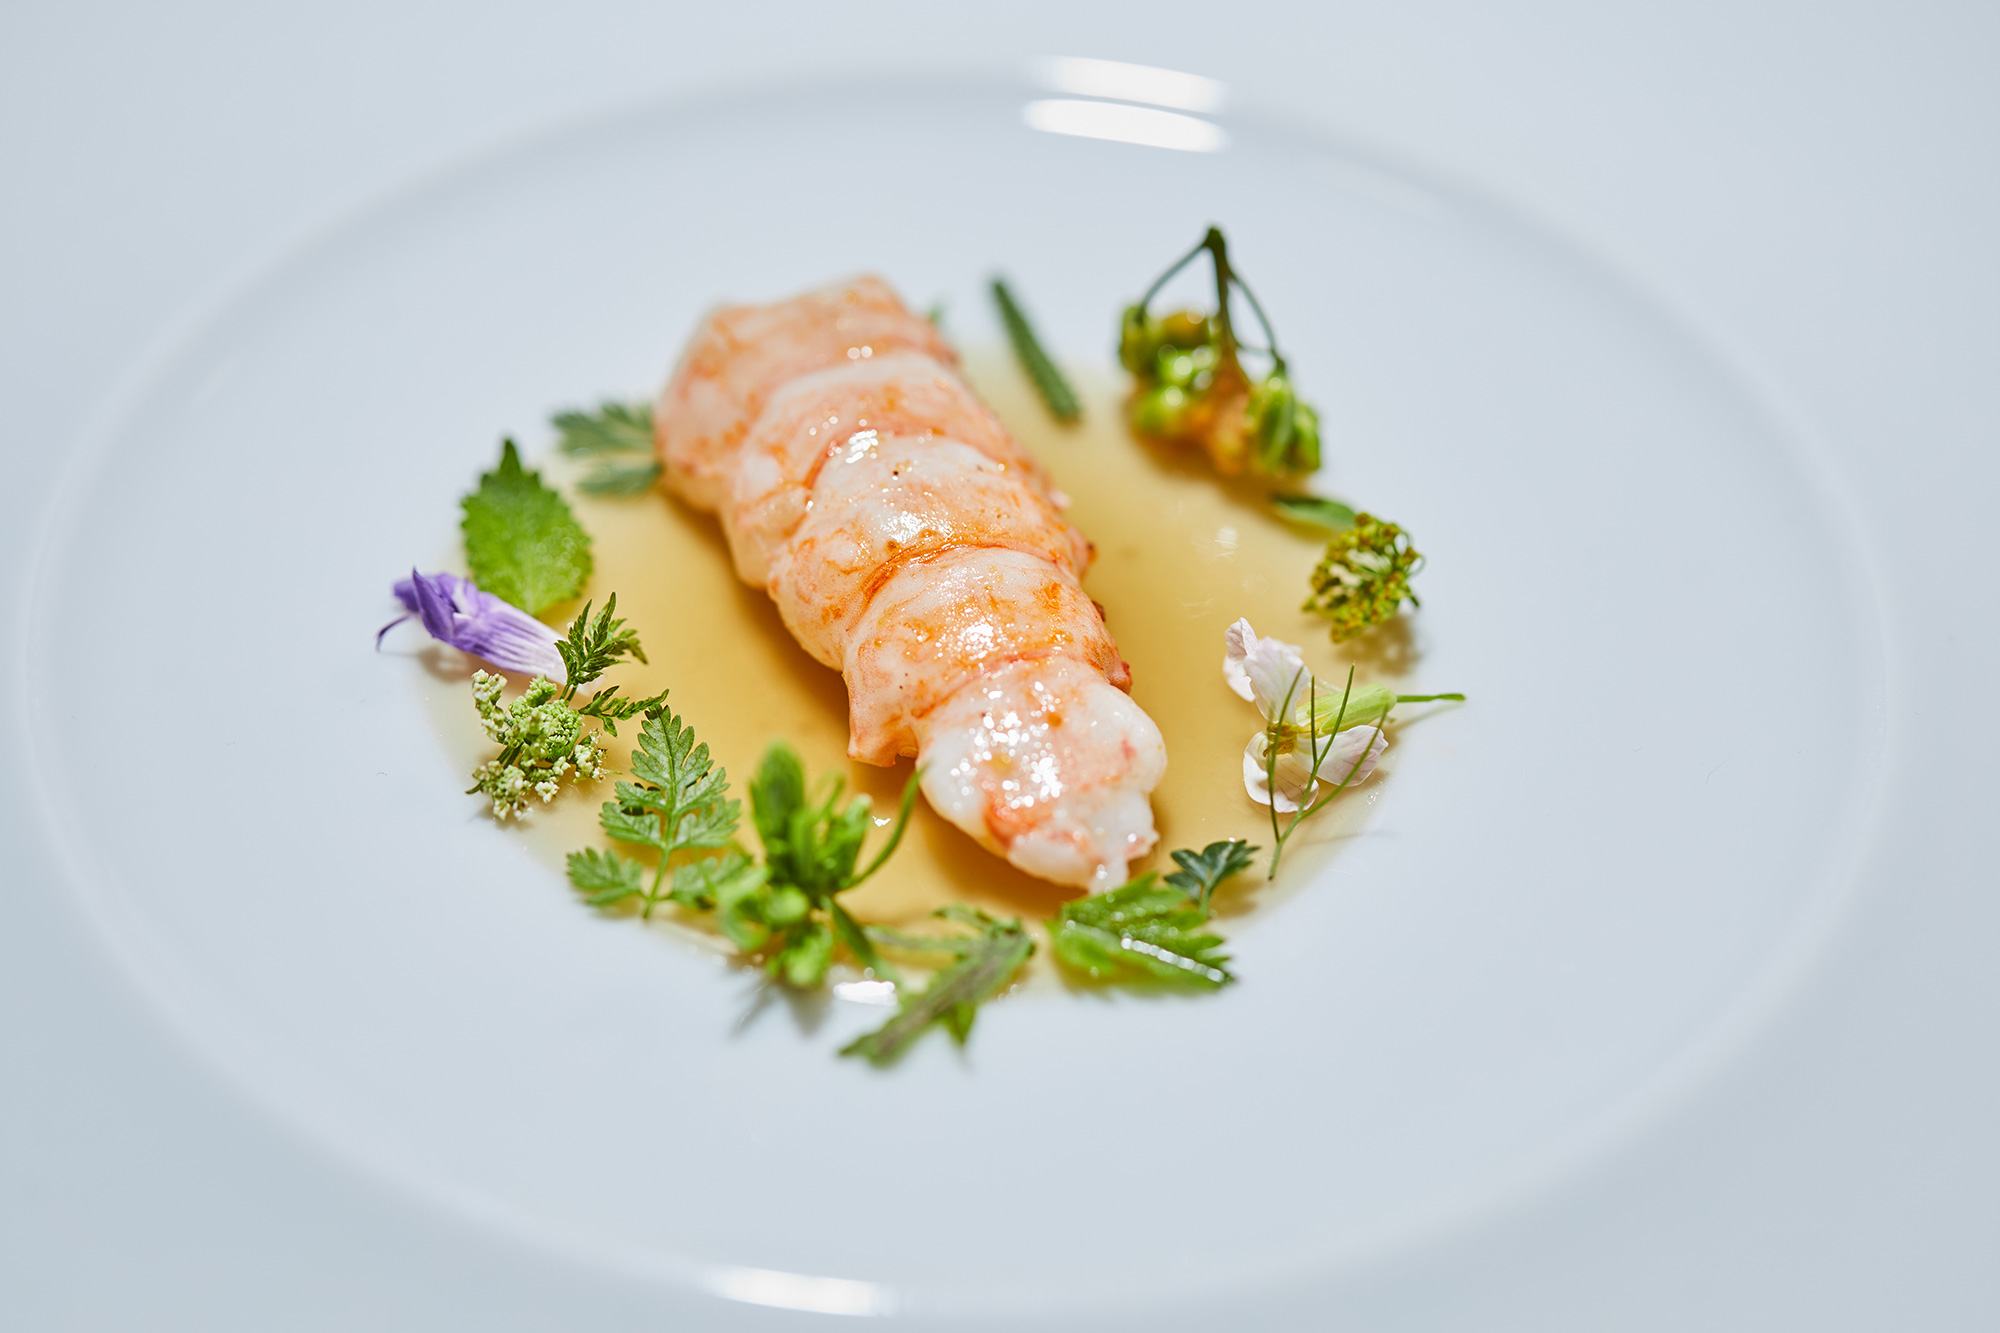 Reduction of langoustines with today's harvest of sprouts, herbs and flowers